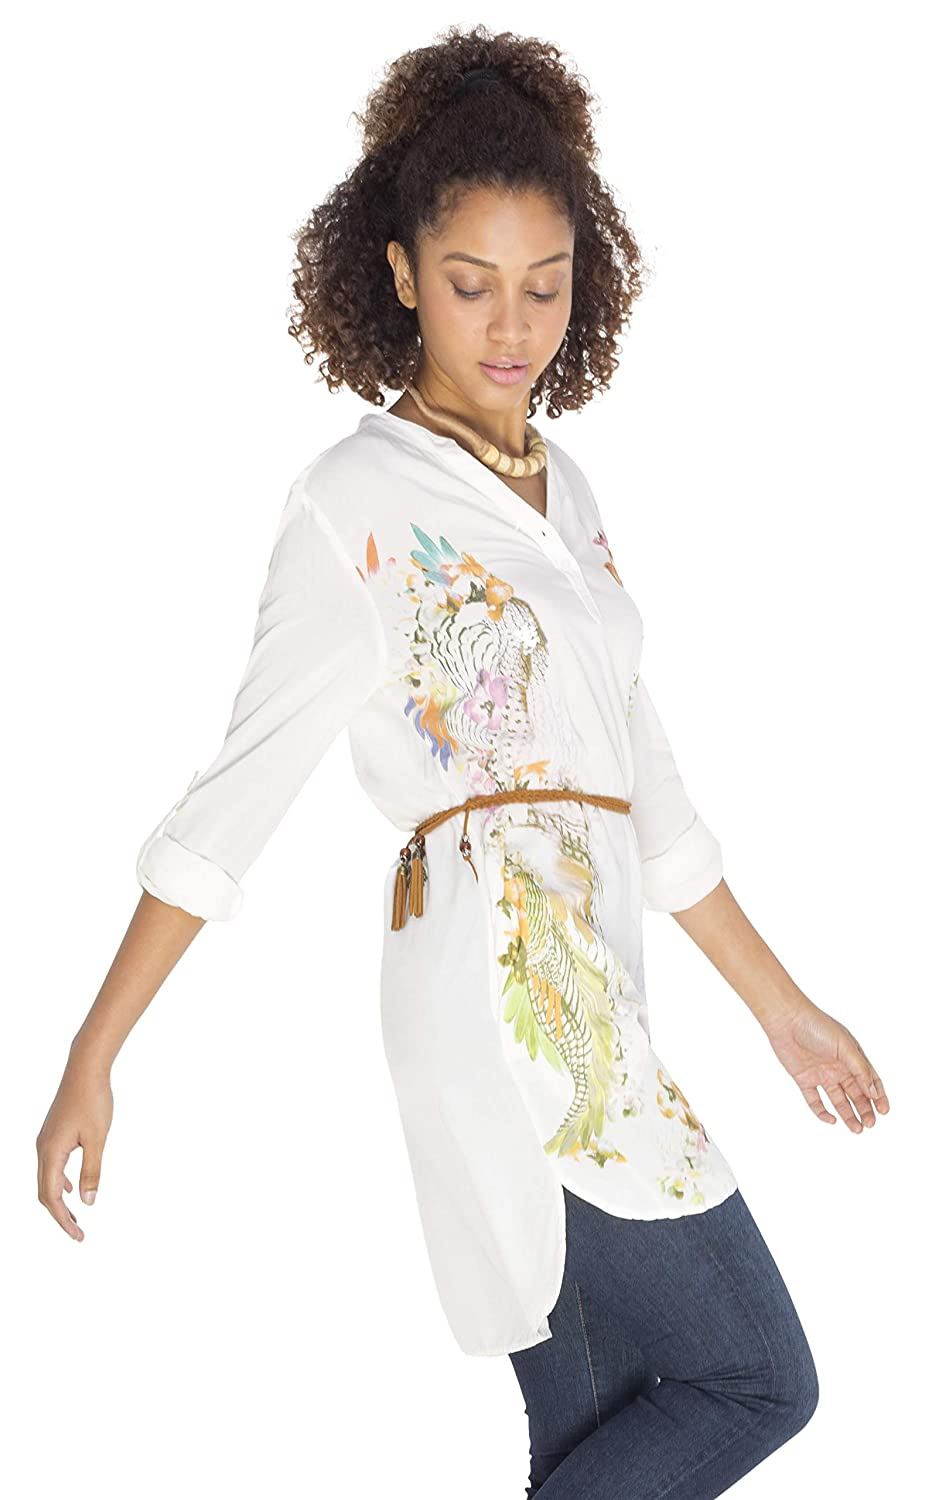 SOIZZI Fashion Women's Holiday Beach Cocktail Dress Cover Ups Kaftan With Plume Pattern Print White